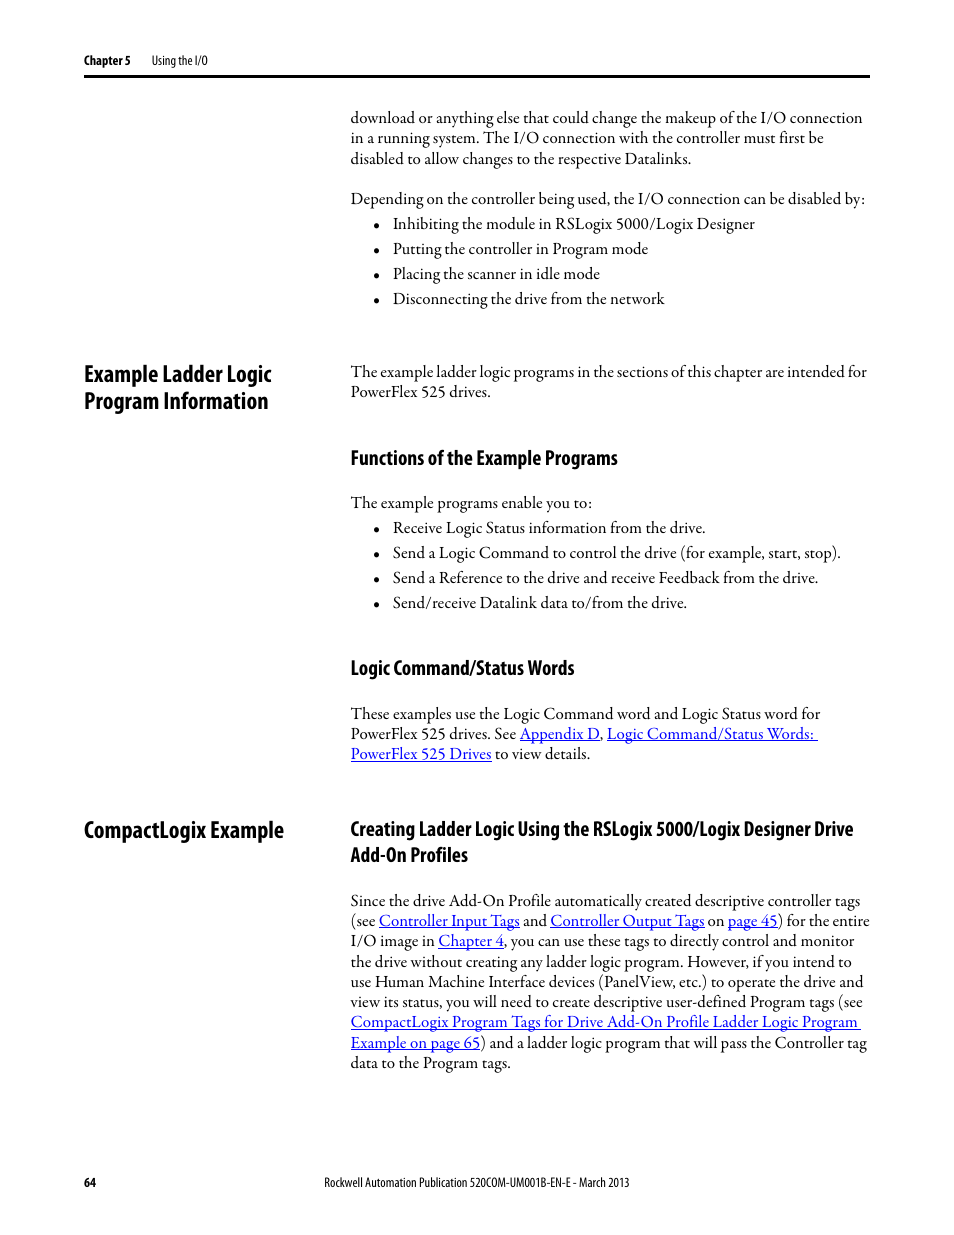 Example ladder logic program information, Functions of the example